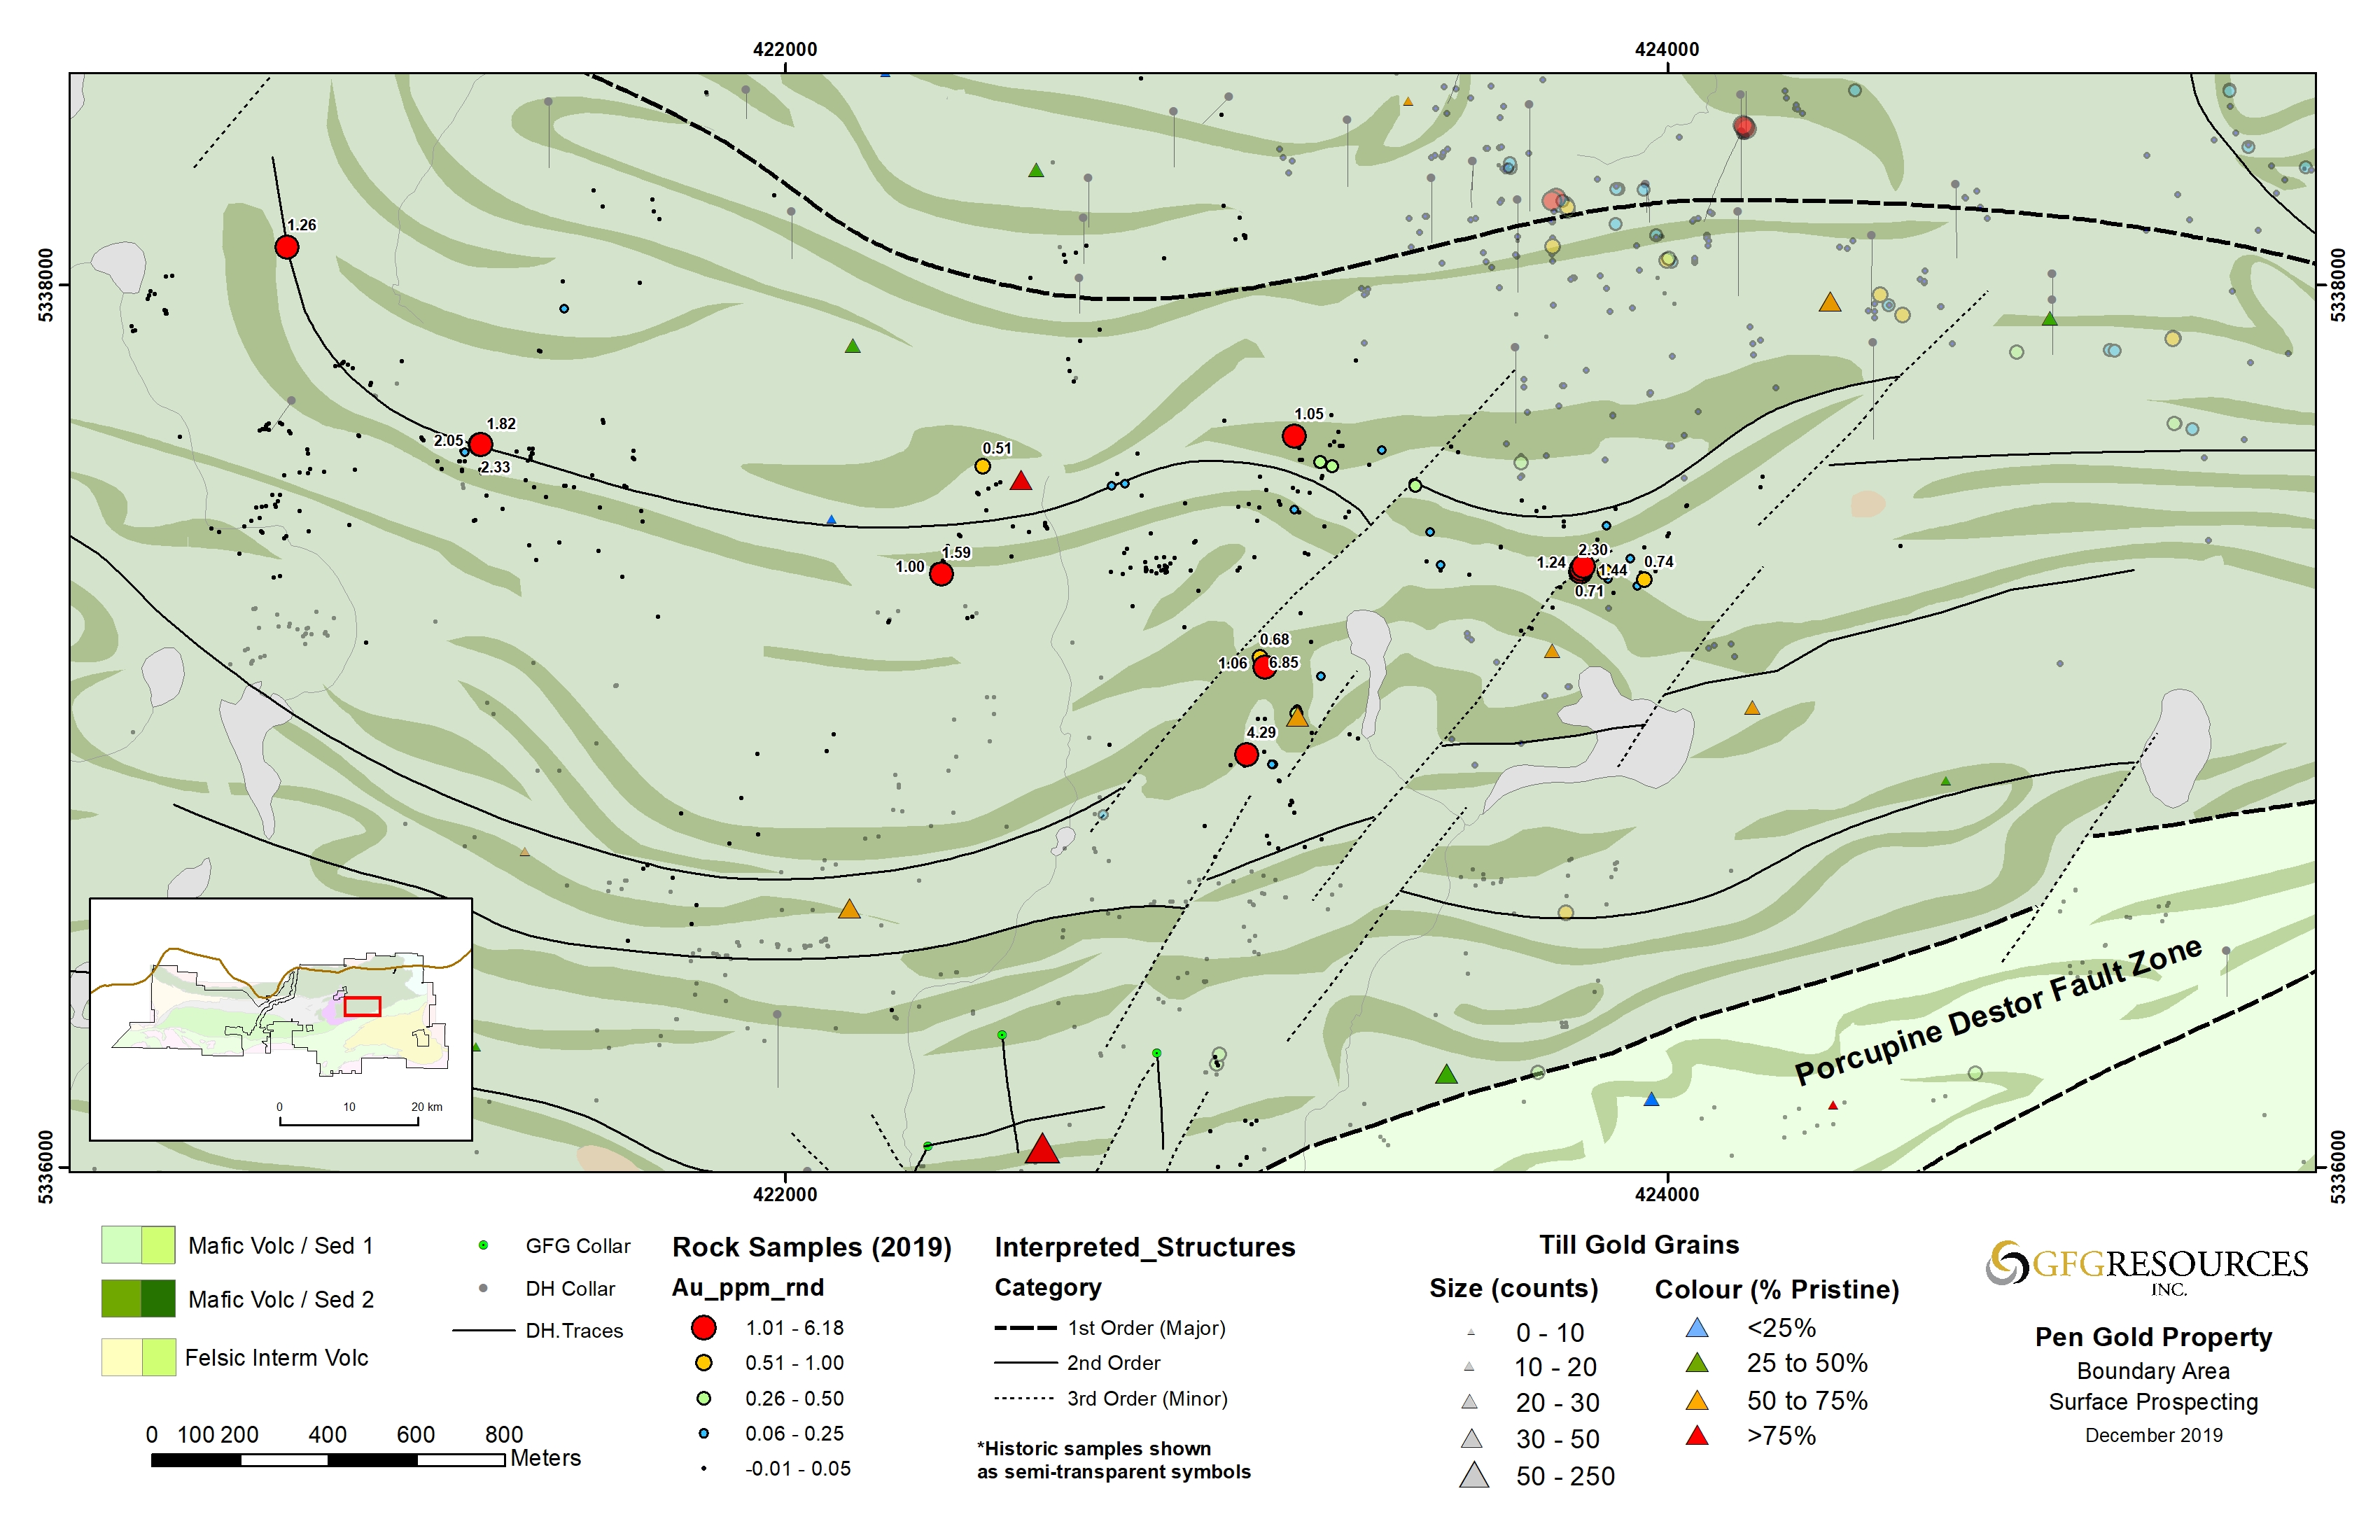 Fig 2: Surface sampling results from the Boundary target at the Pen Gold Project